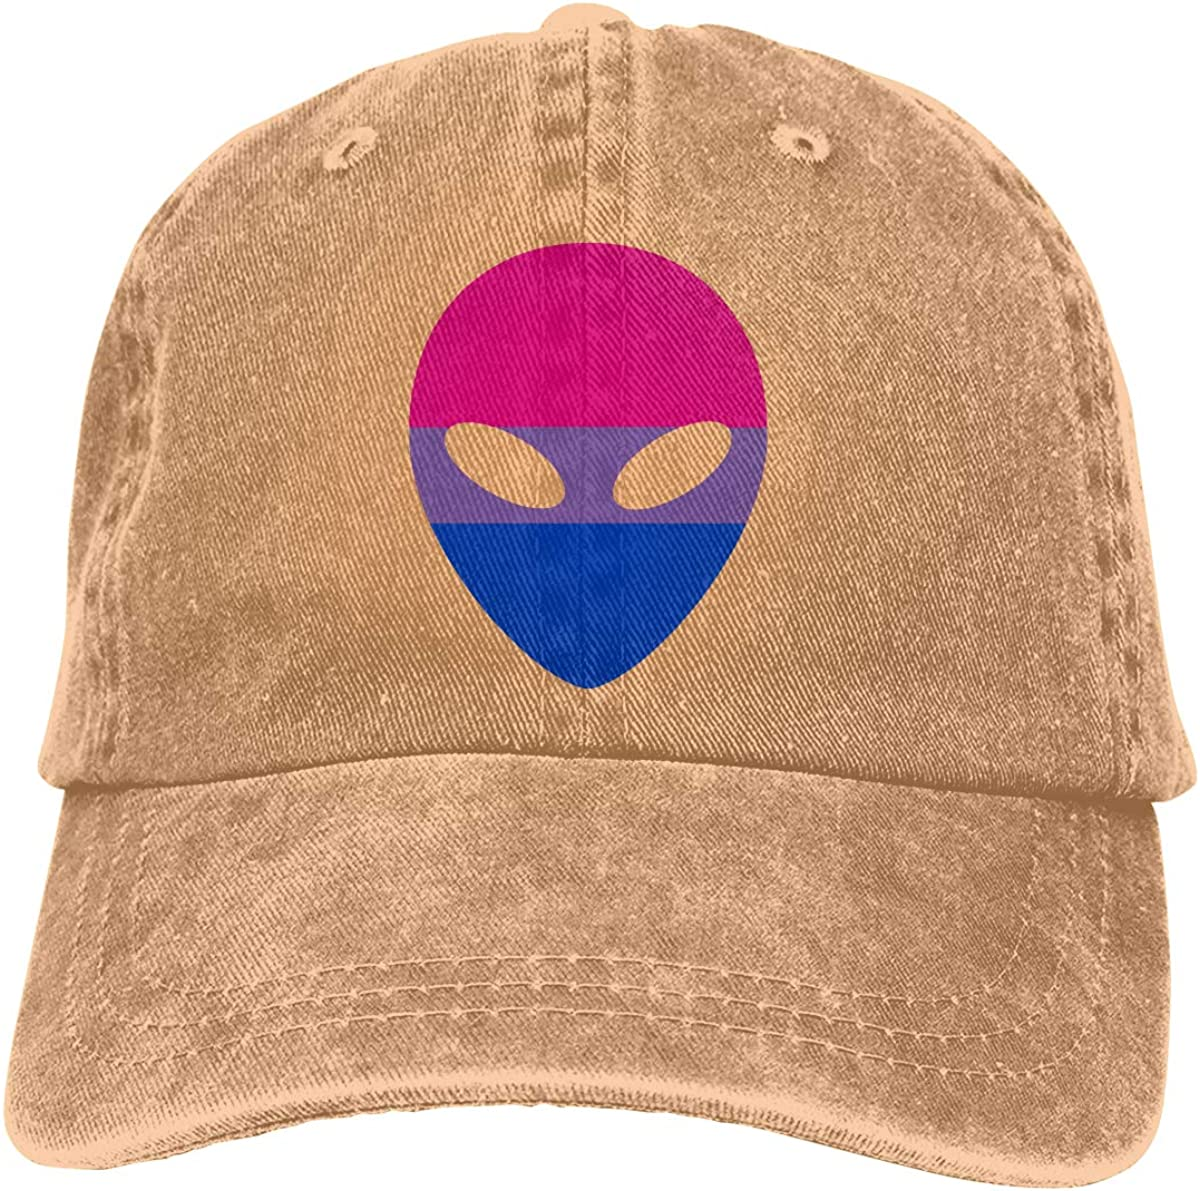 PMGM-C Bisexual Alien Adult Personalize Jeans Hip Hop Cap Adjustable Baseball Cap